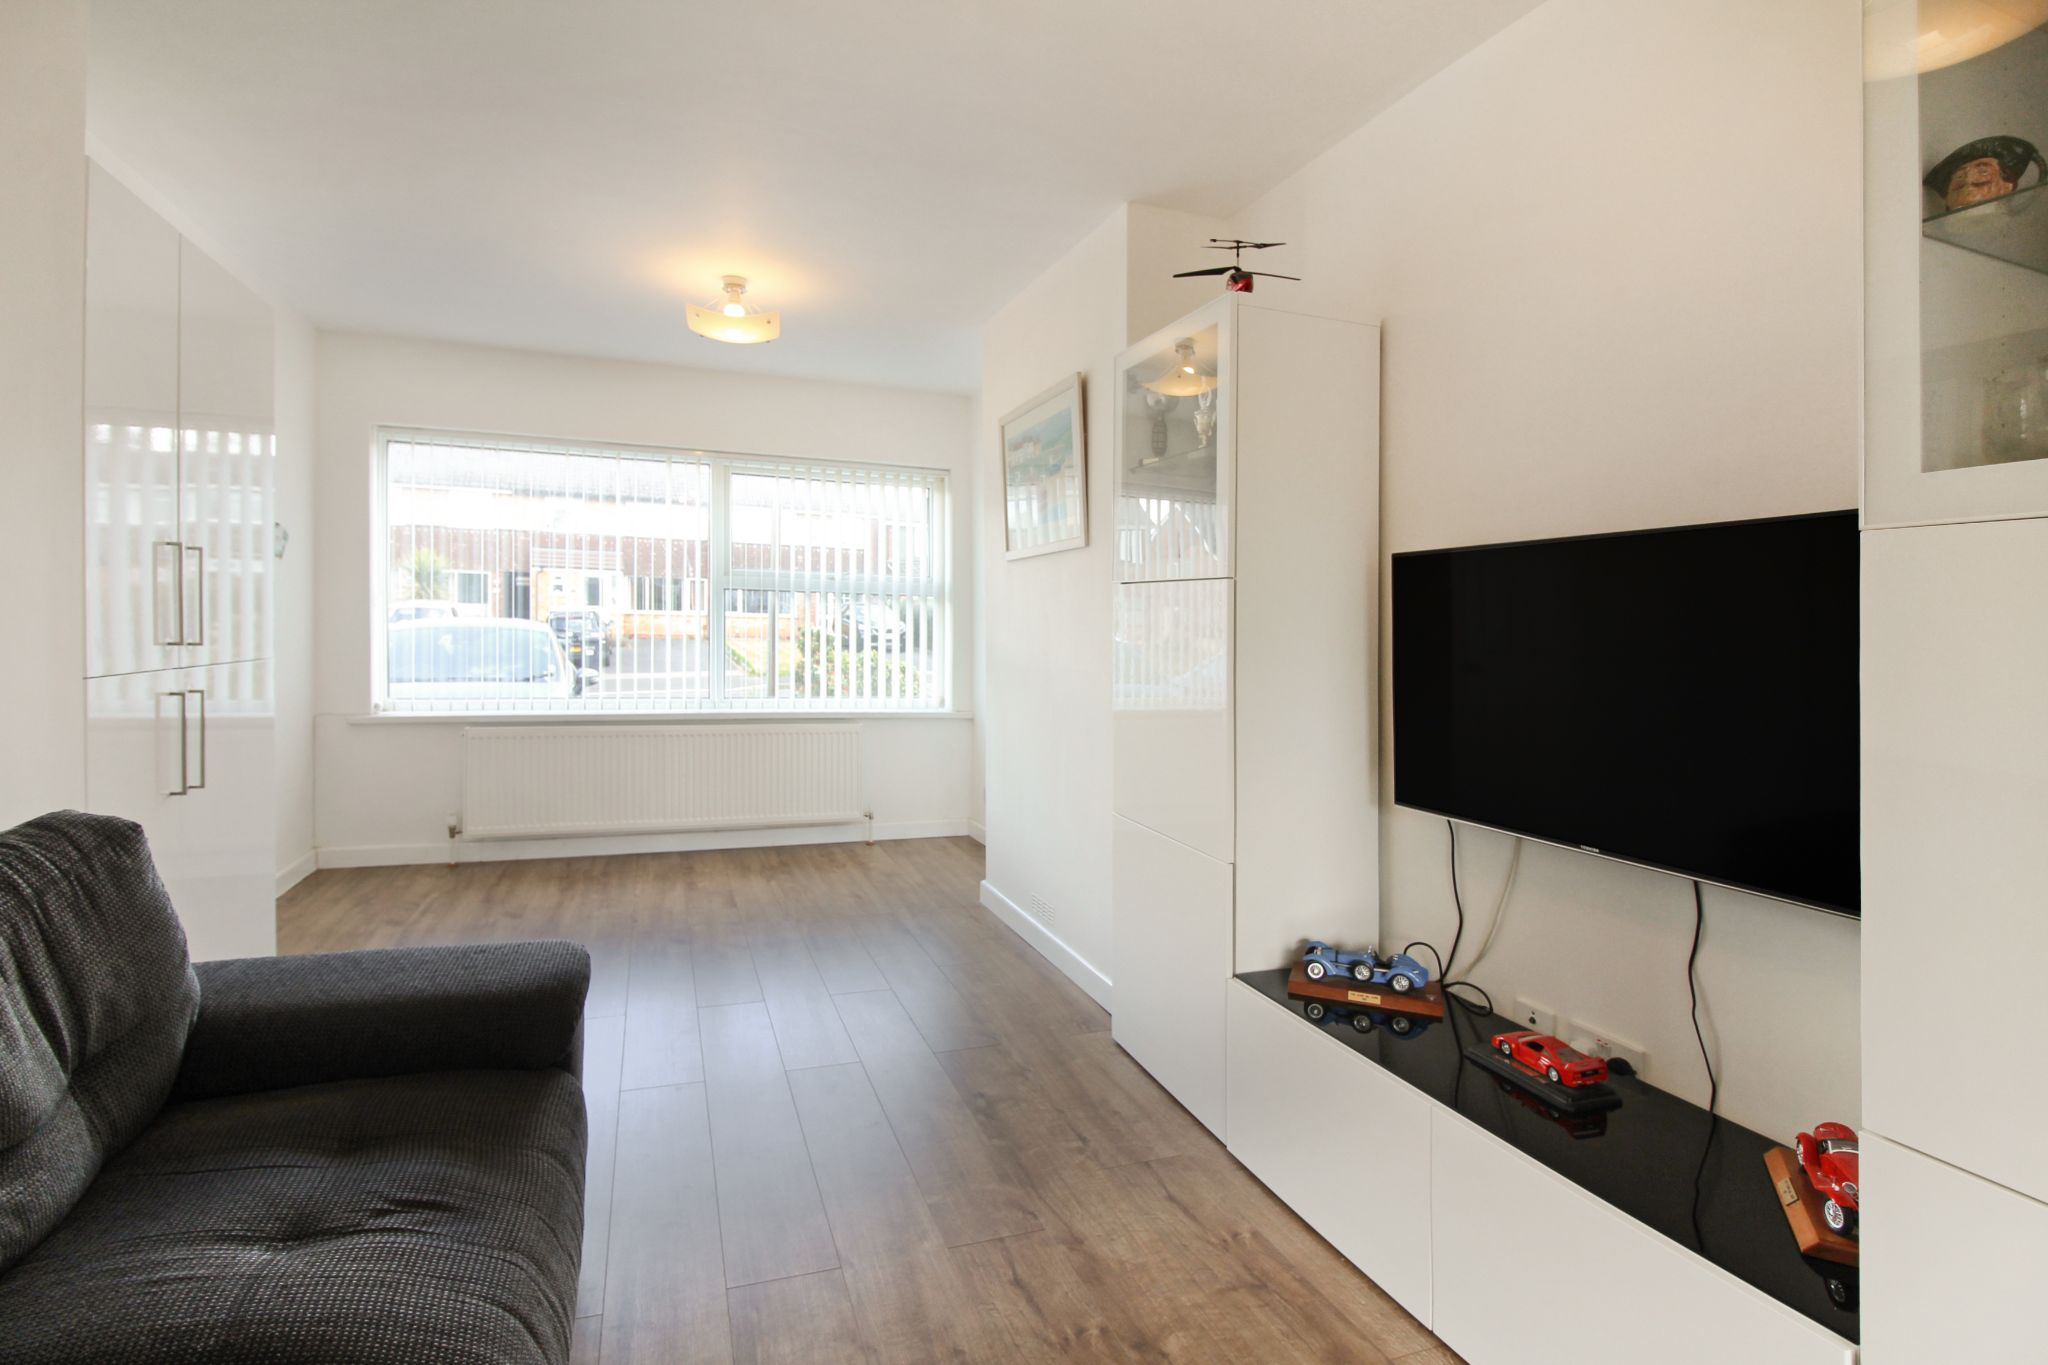 3 bedroom end terraced house For Sale in Solihull - Property photograph.